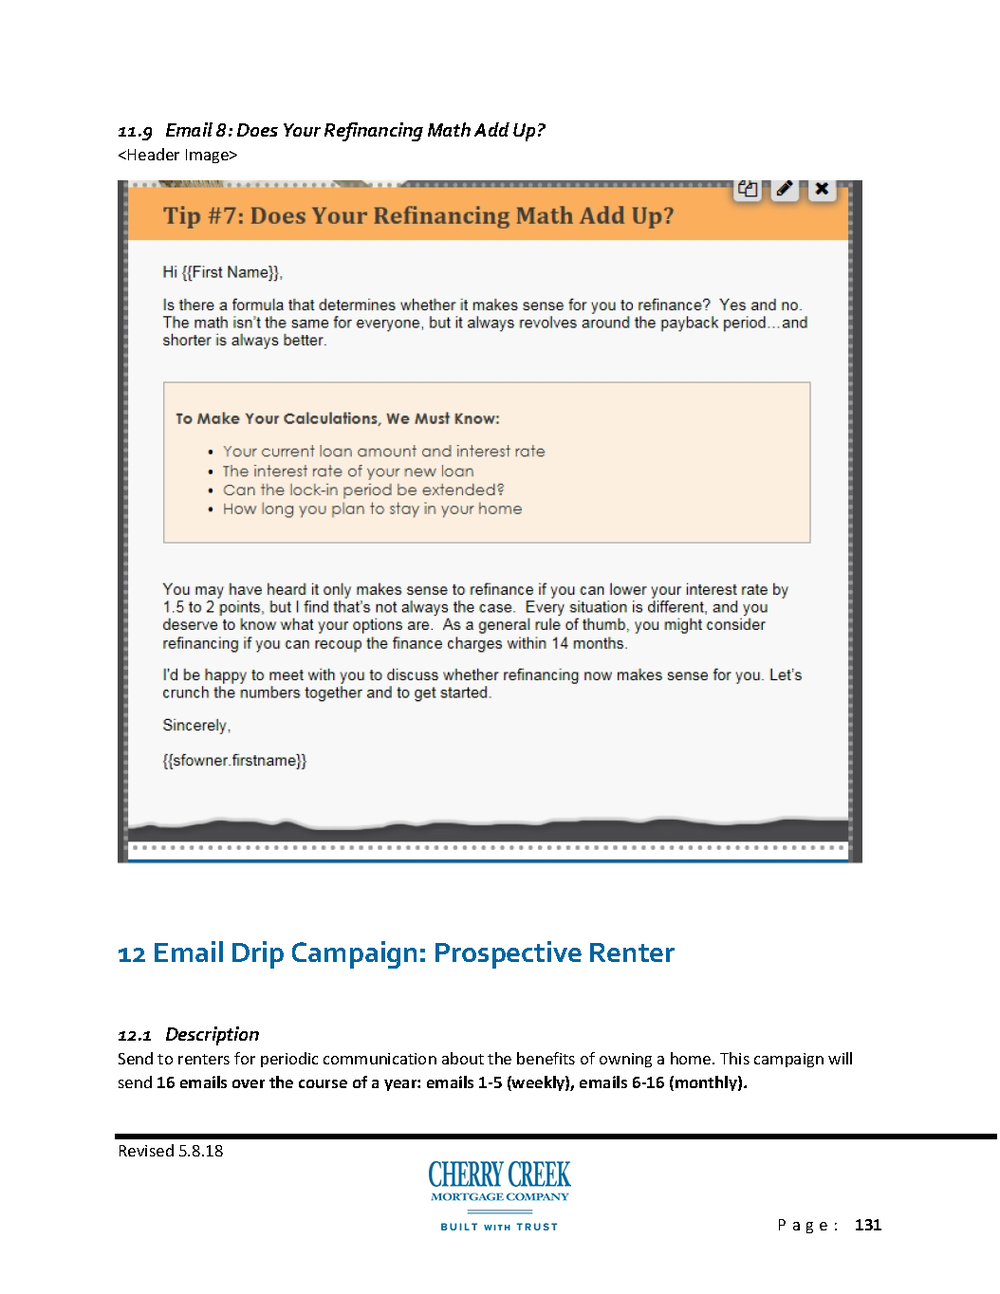 Jungo_Email_Drip_Campaigns-Consumers_D1O6plI_Page_131.png